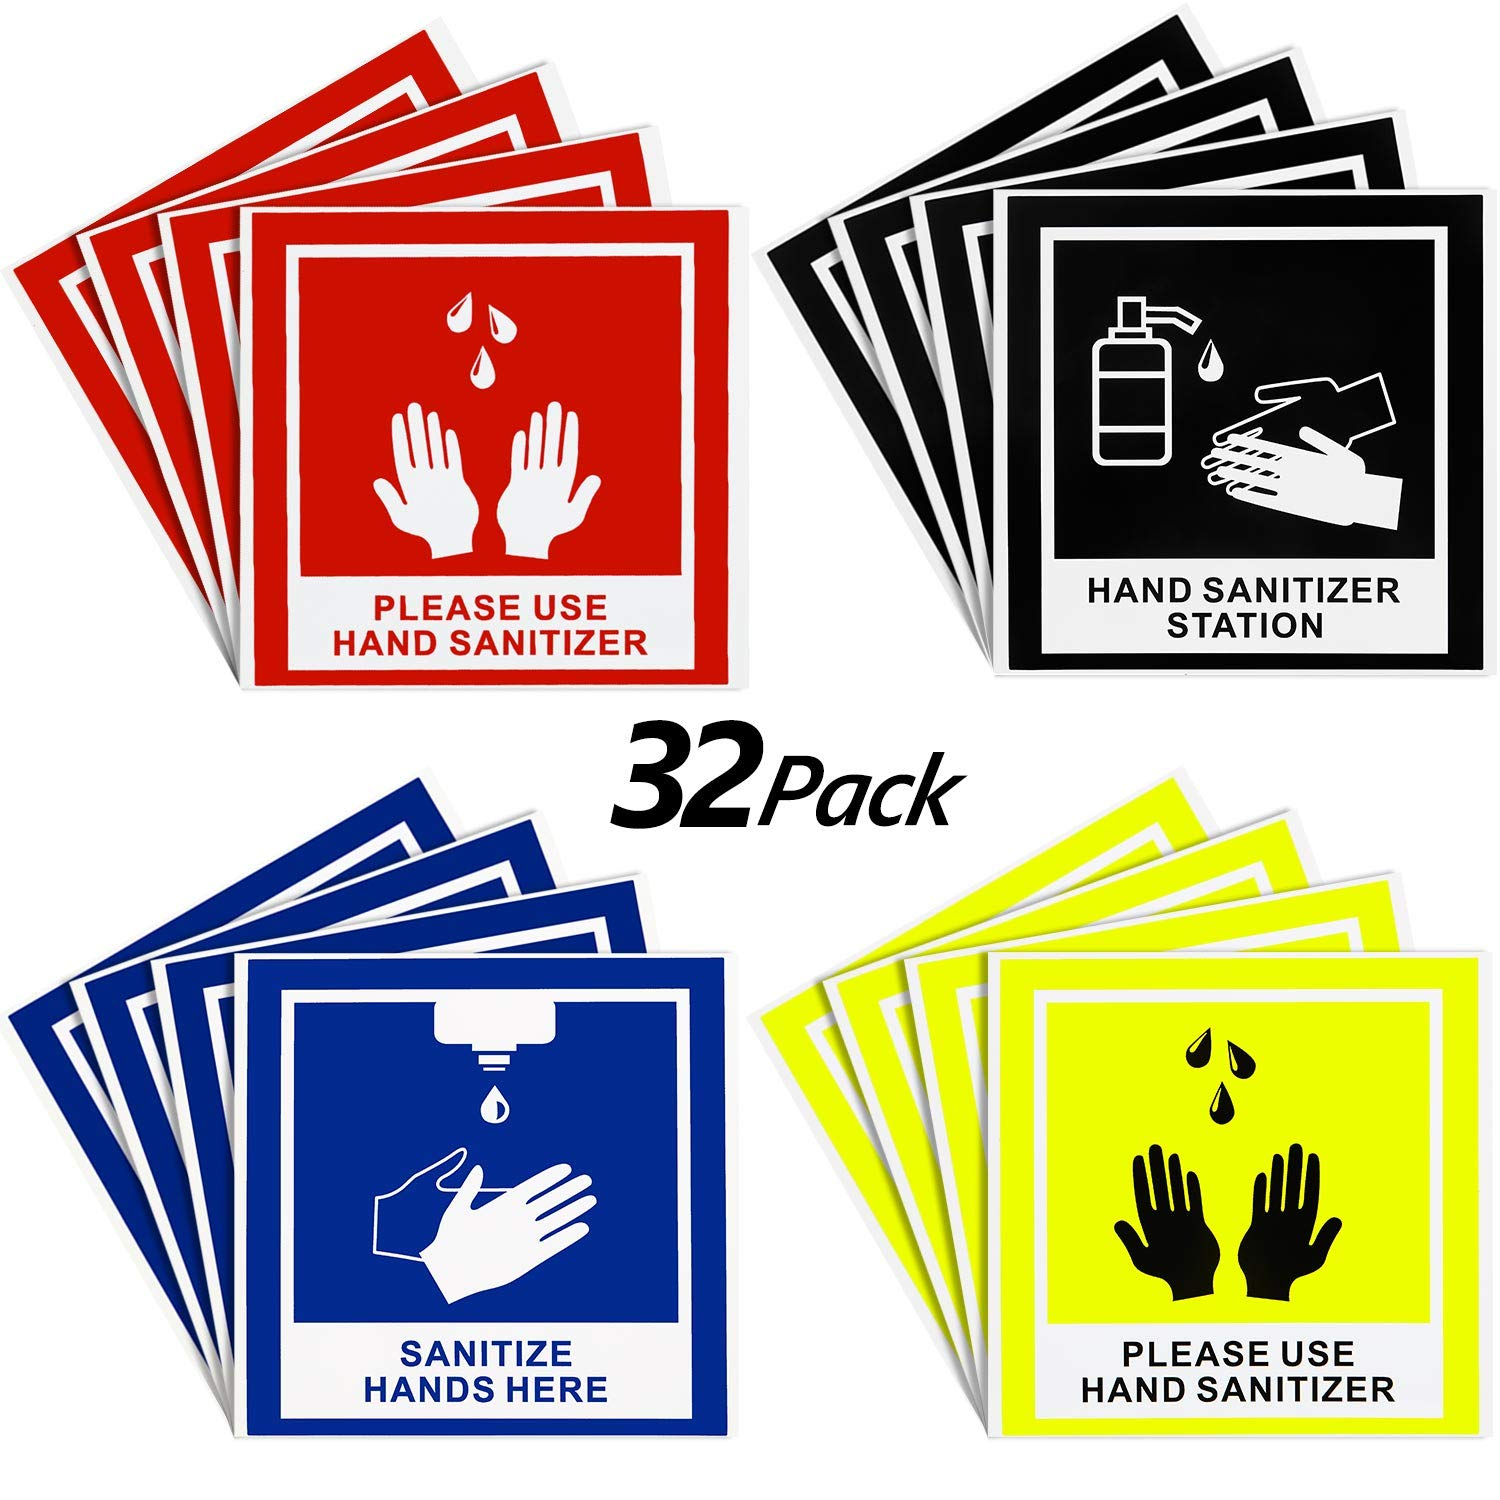 Hand Sanitize Signs Sanitize Hands Here Stickers 5.7 x 5.7 Inch for Restaurant Sinks, Food Trucks, Kitchens and More, Weather Resistant Anti-Scratch Hand Washing Labels for Indoor Outdoor (32)